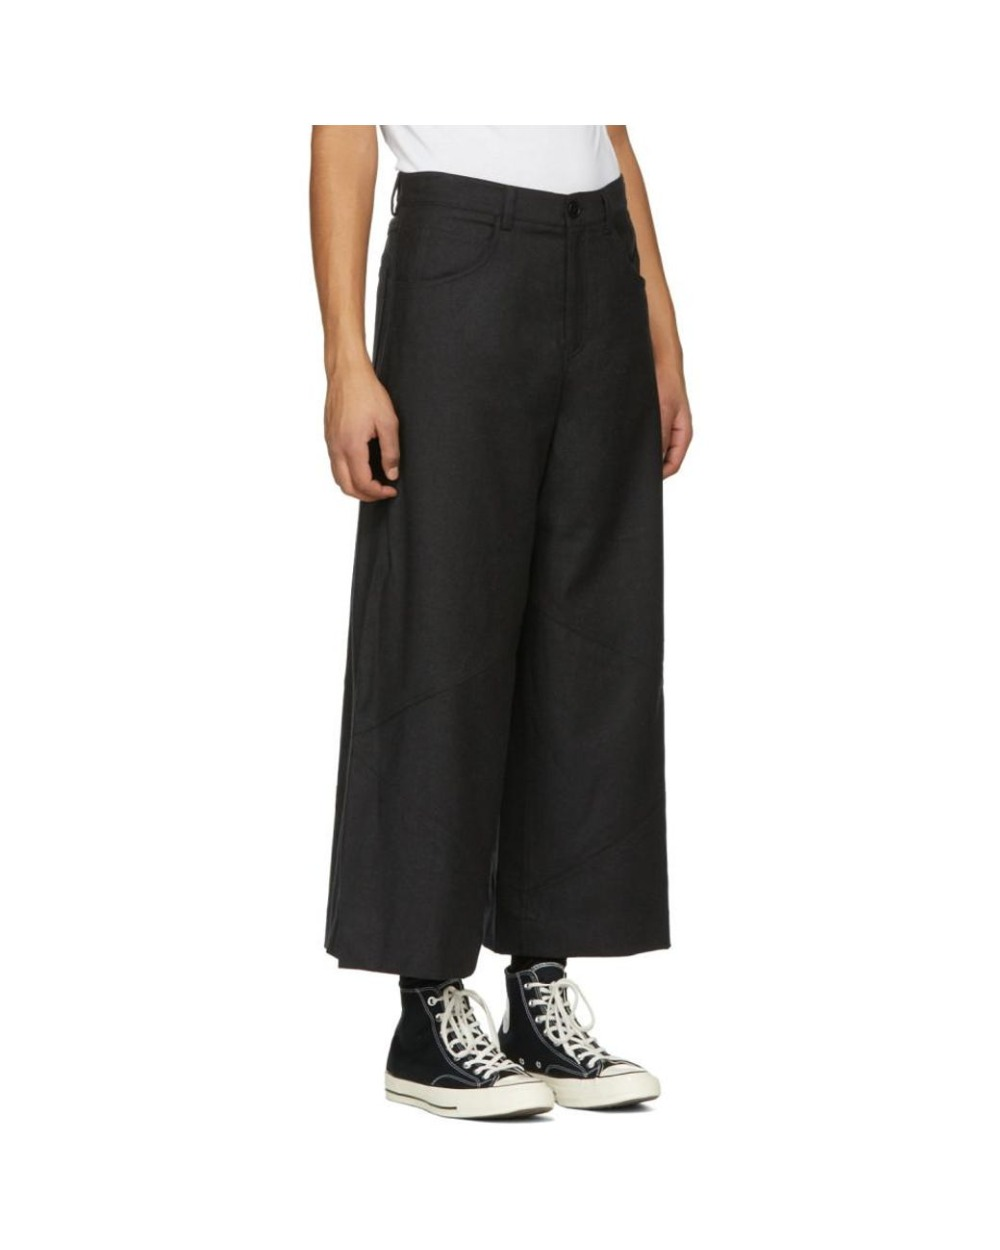 Trousers GD Men's NEW Bell Retro Costumes Hair-Stylist Customized Stage-Singer 27-46